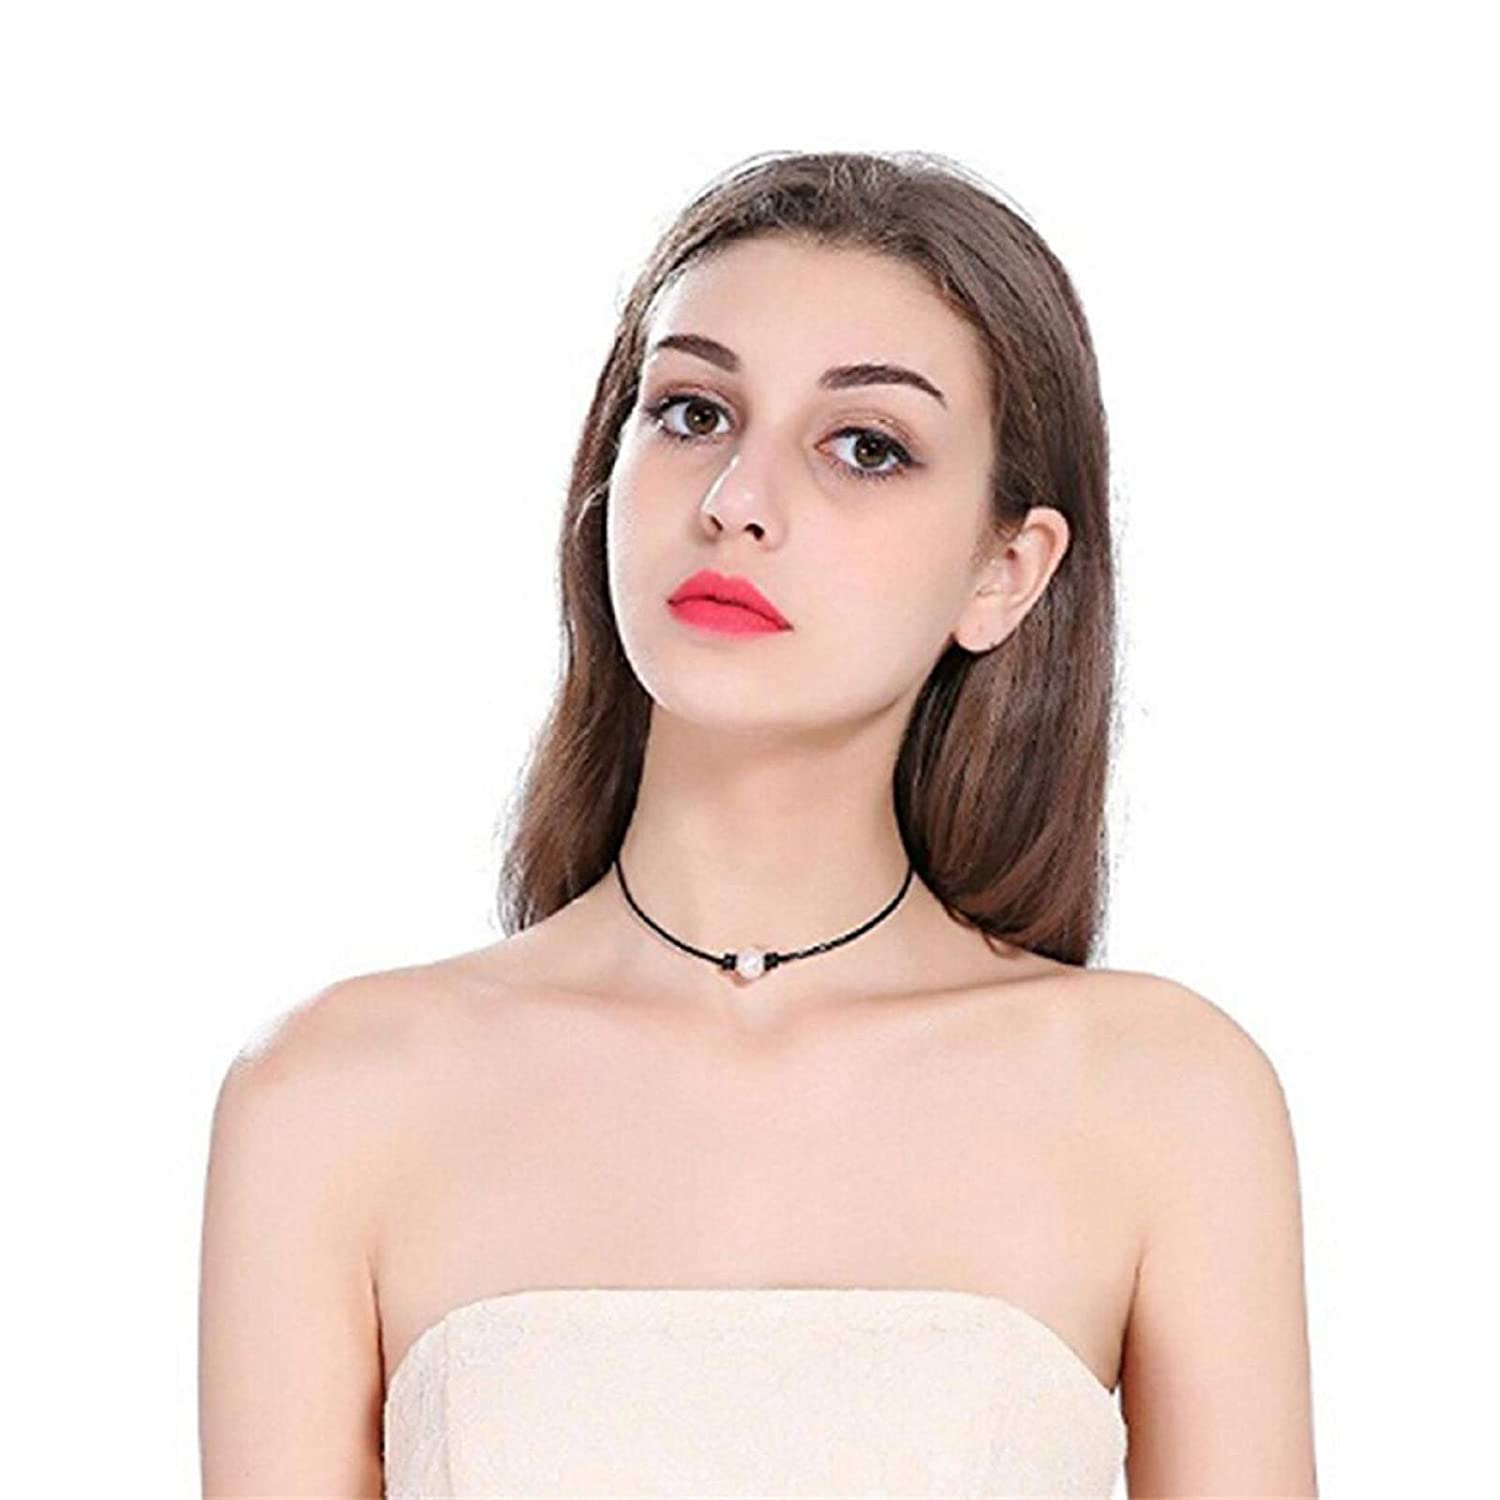 2 Pcs Single Cultured Freshwater Pearl Choker Necklace Handmade Genuine Leather One Bead Jewelry for Women Girls